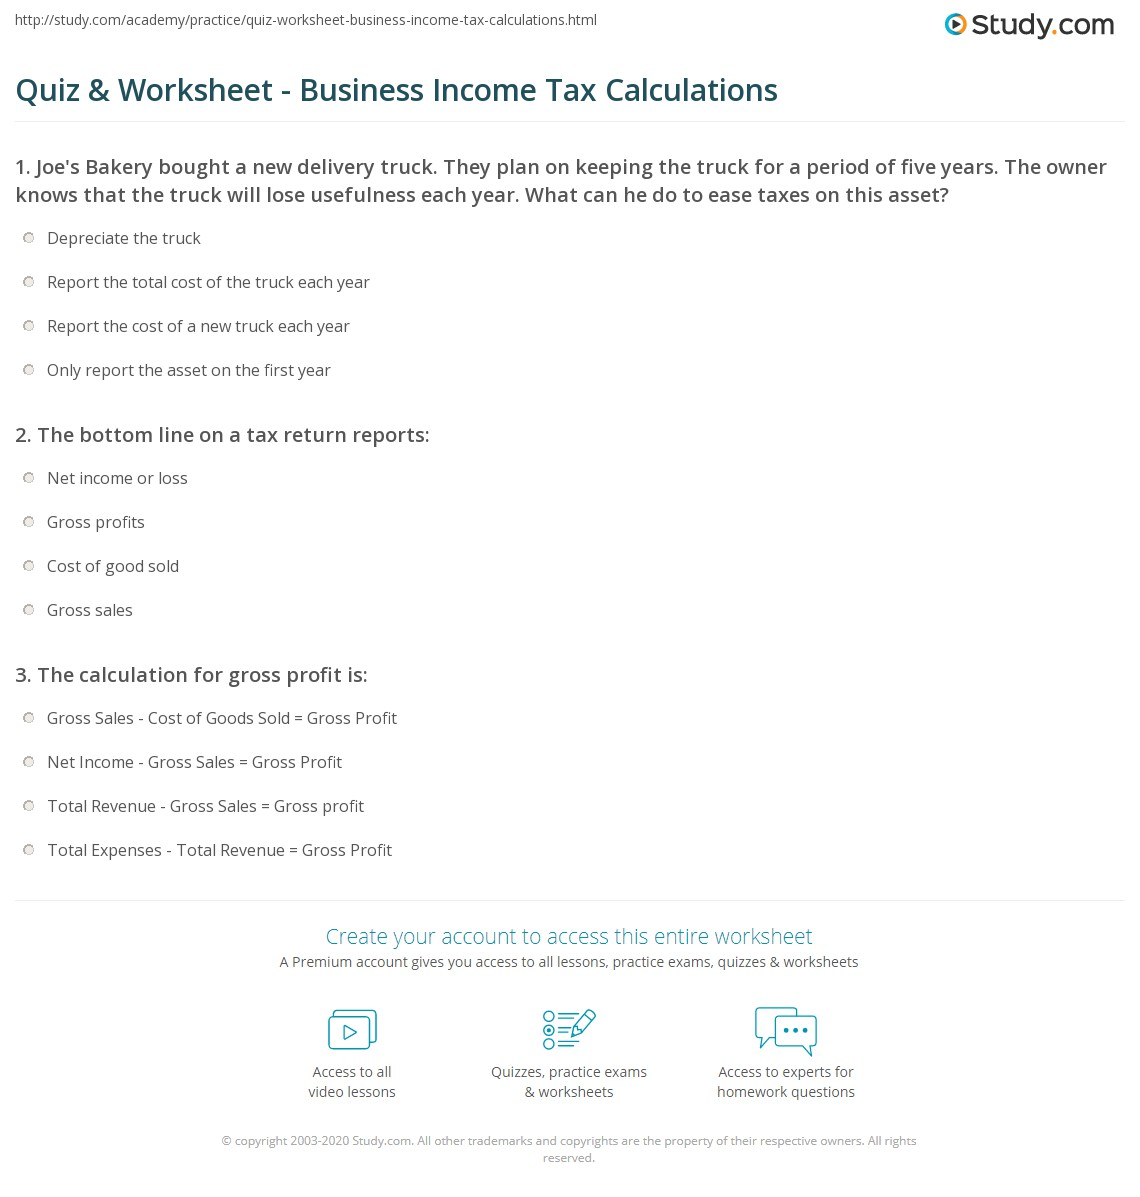 worksheet Business Income Calculation Worksheet quiz worksheet business income tax calculations study com print worksheet